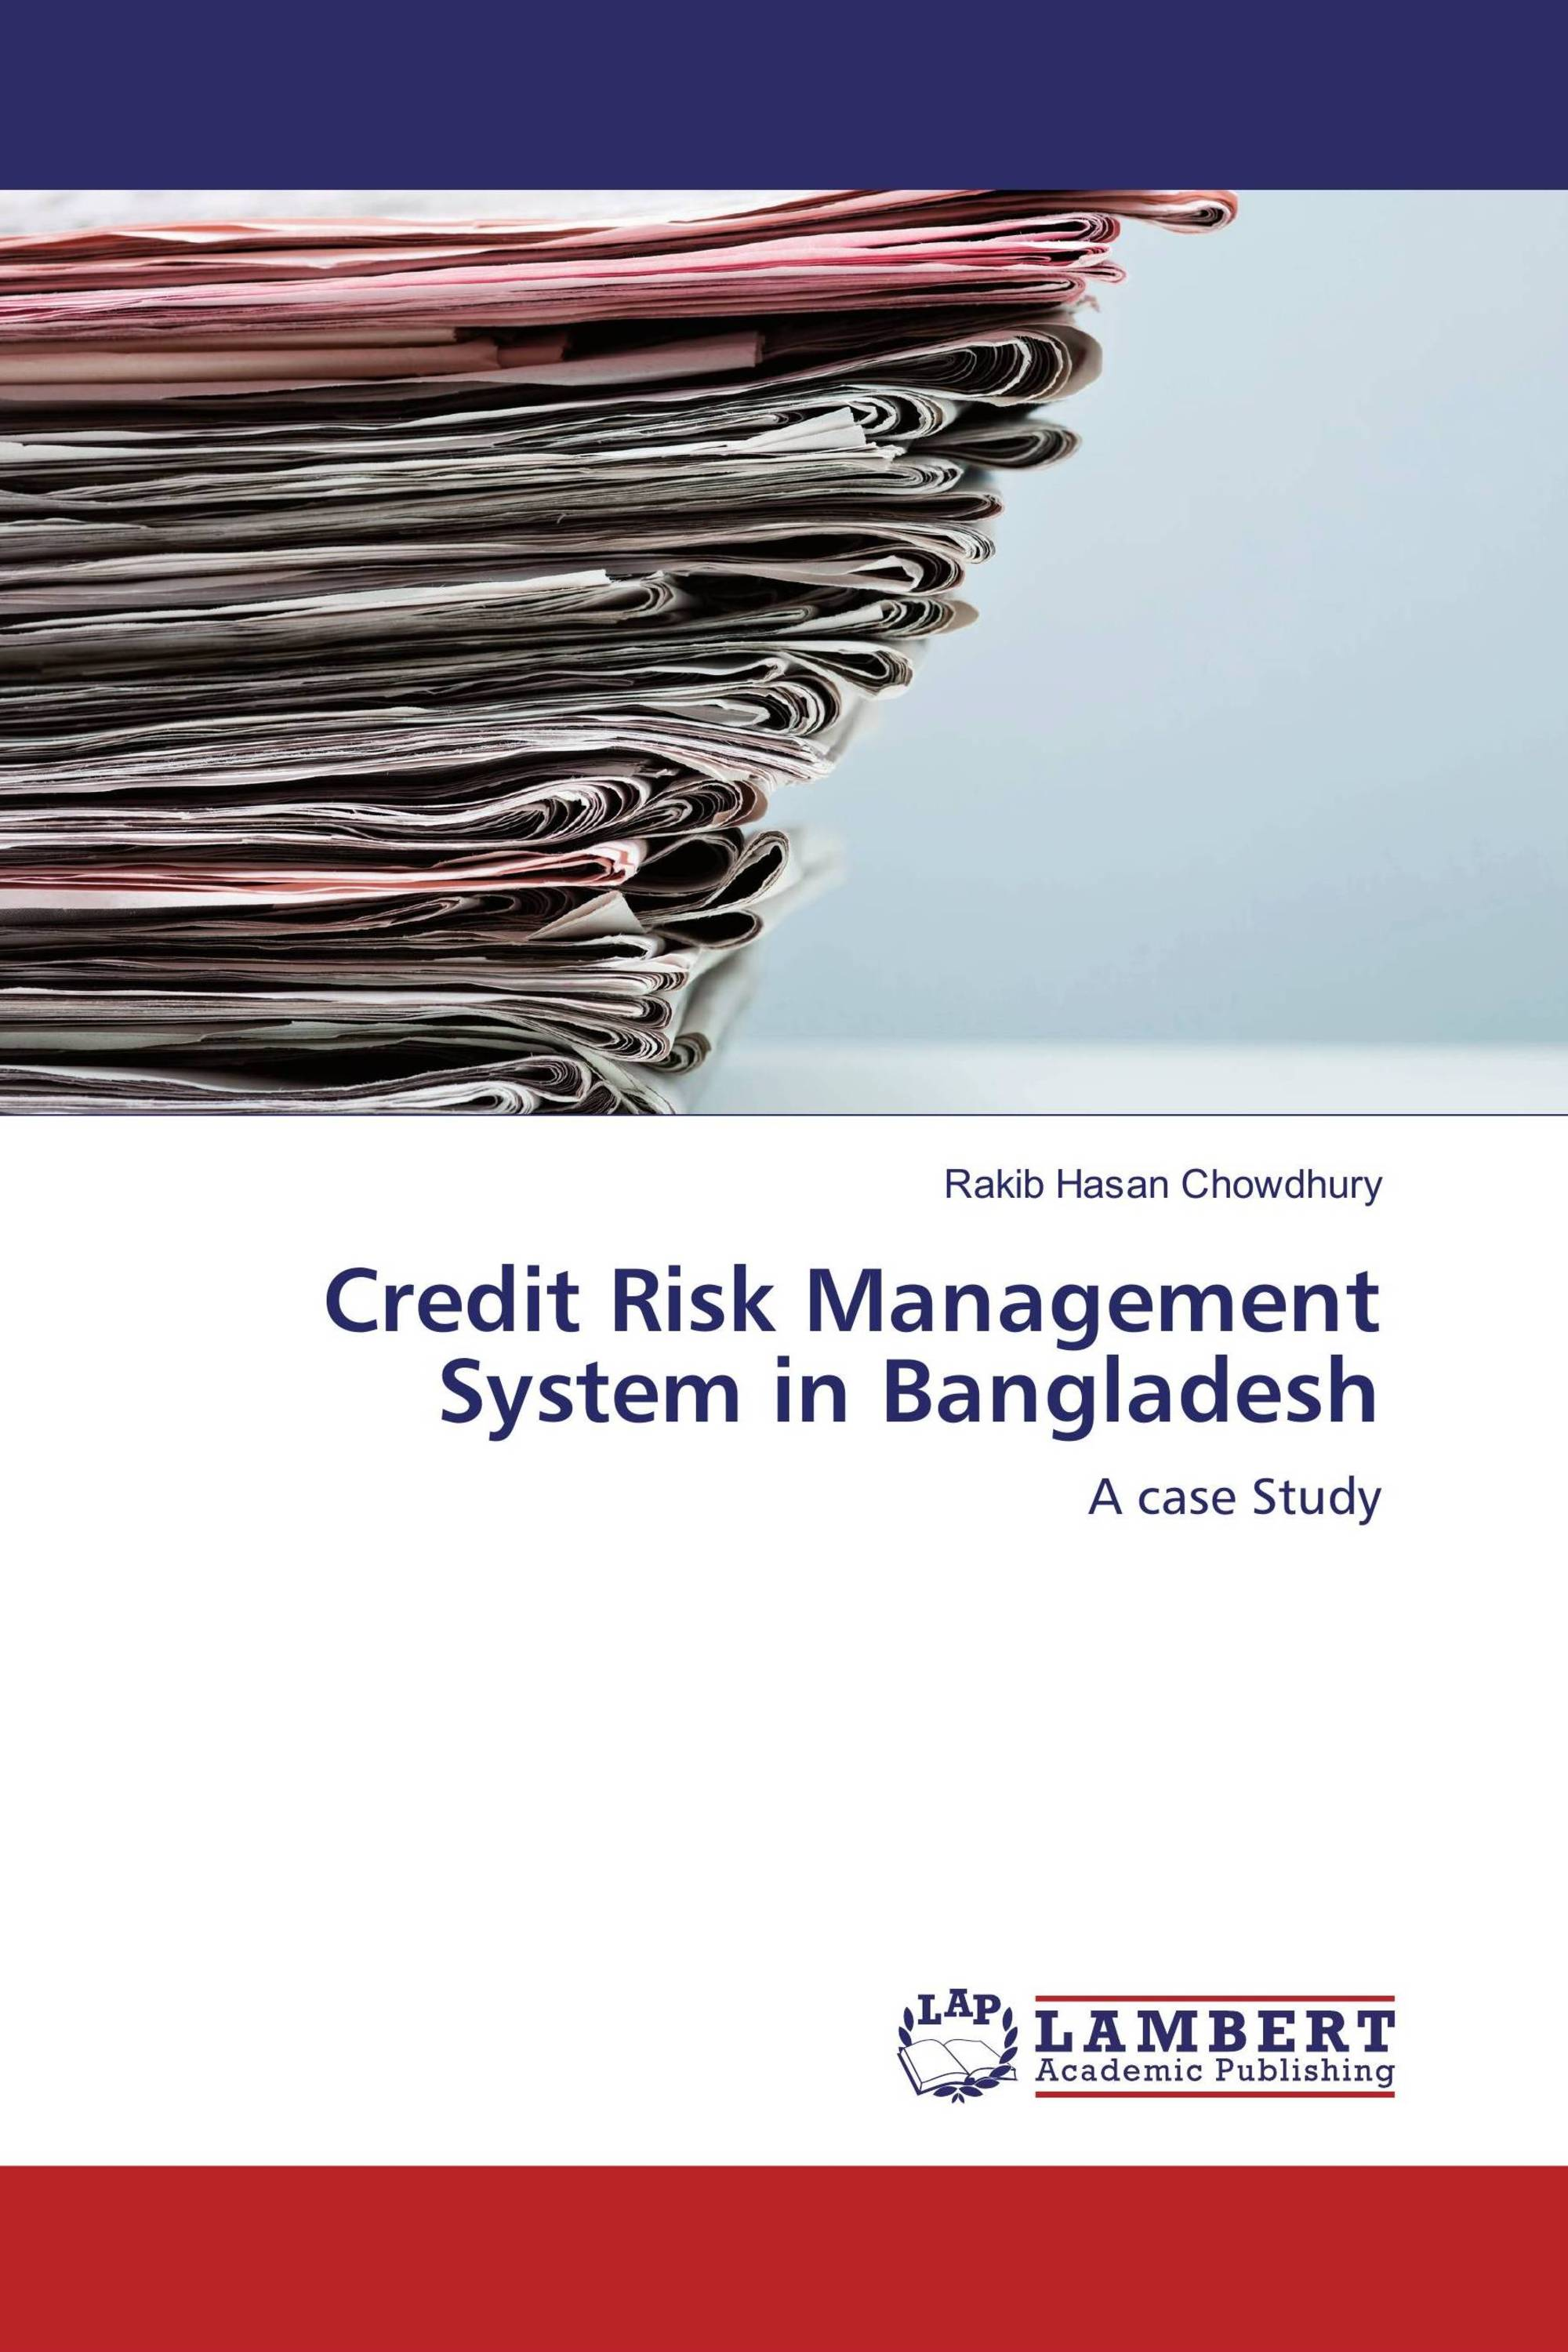 """credit risk management in bangladesh janata Letter of transmittal may 12, 2015 to the supervisor brac university mohakhali, dhaka subject: submission of internship report dear sir, i am truly pleased to submit my internship report on the """"credit management policy and performance analysis of janata bank limited."""